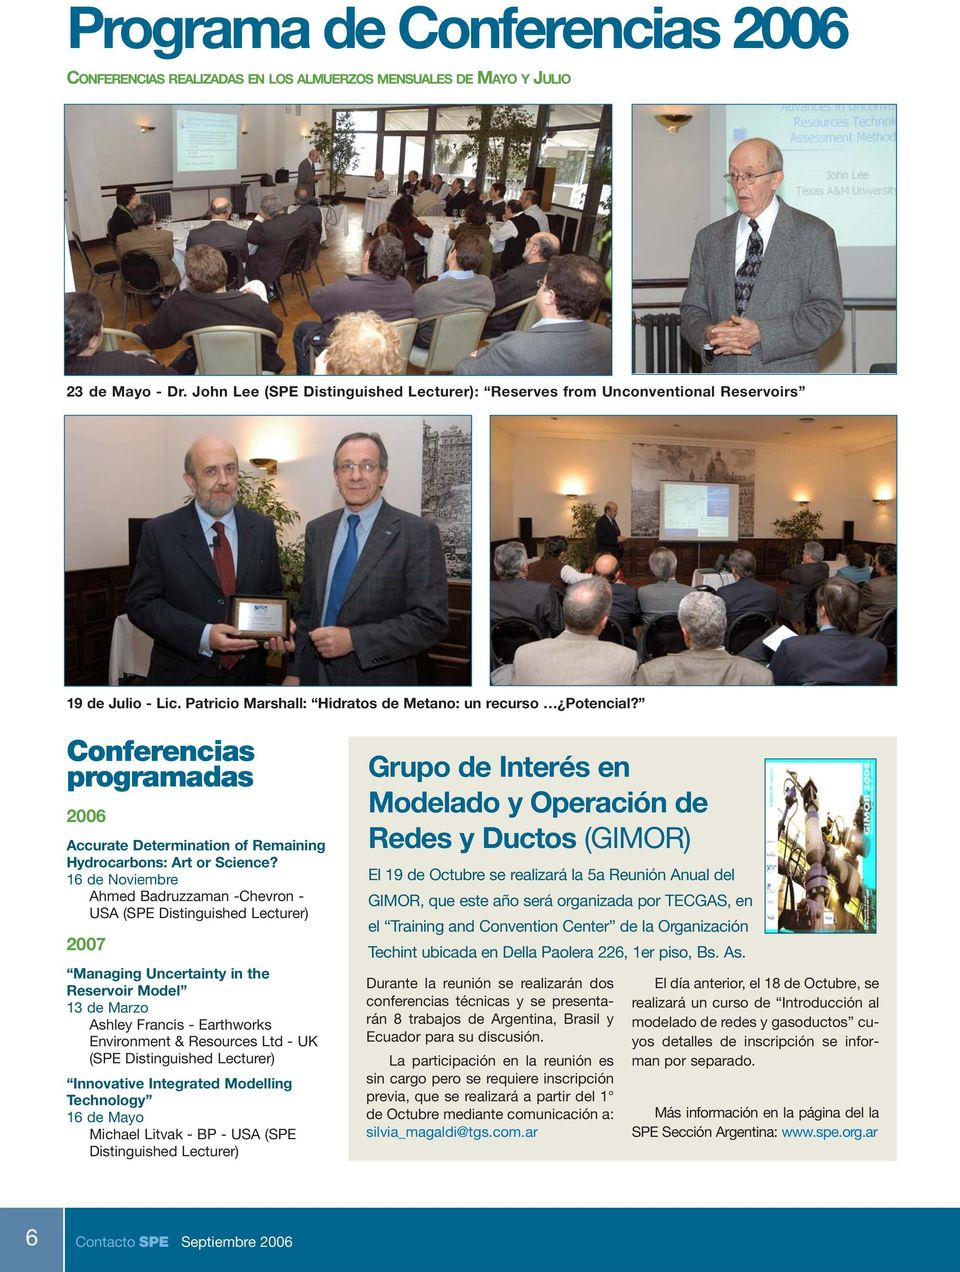 Conferencias programadas 2006 Accurate Determination of Remaining Hydrocarbons: Art or Science?